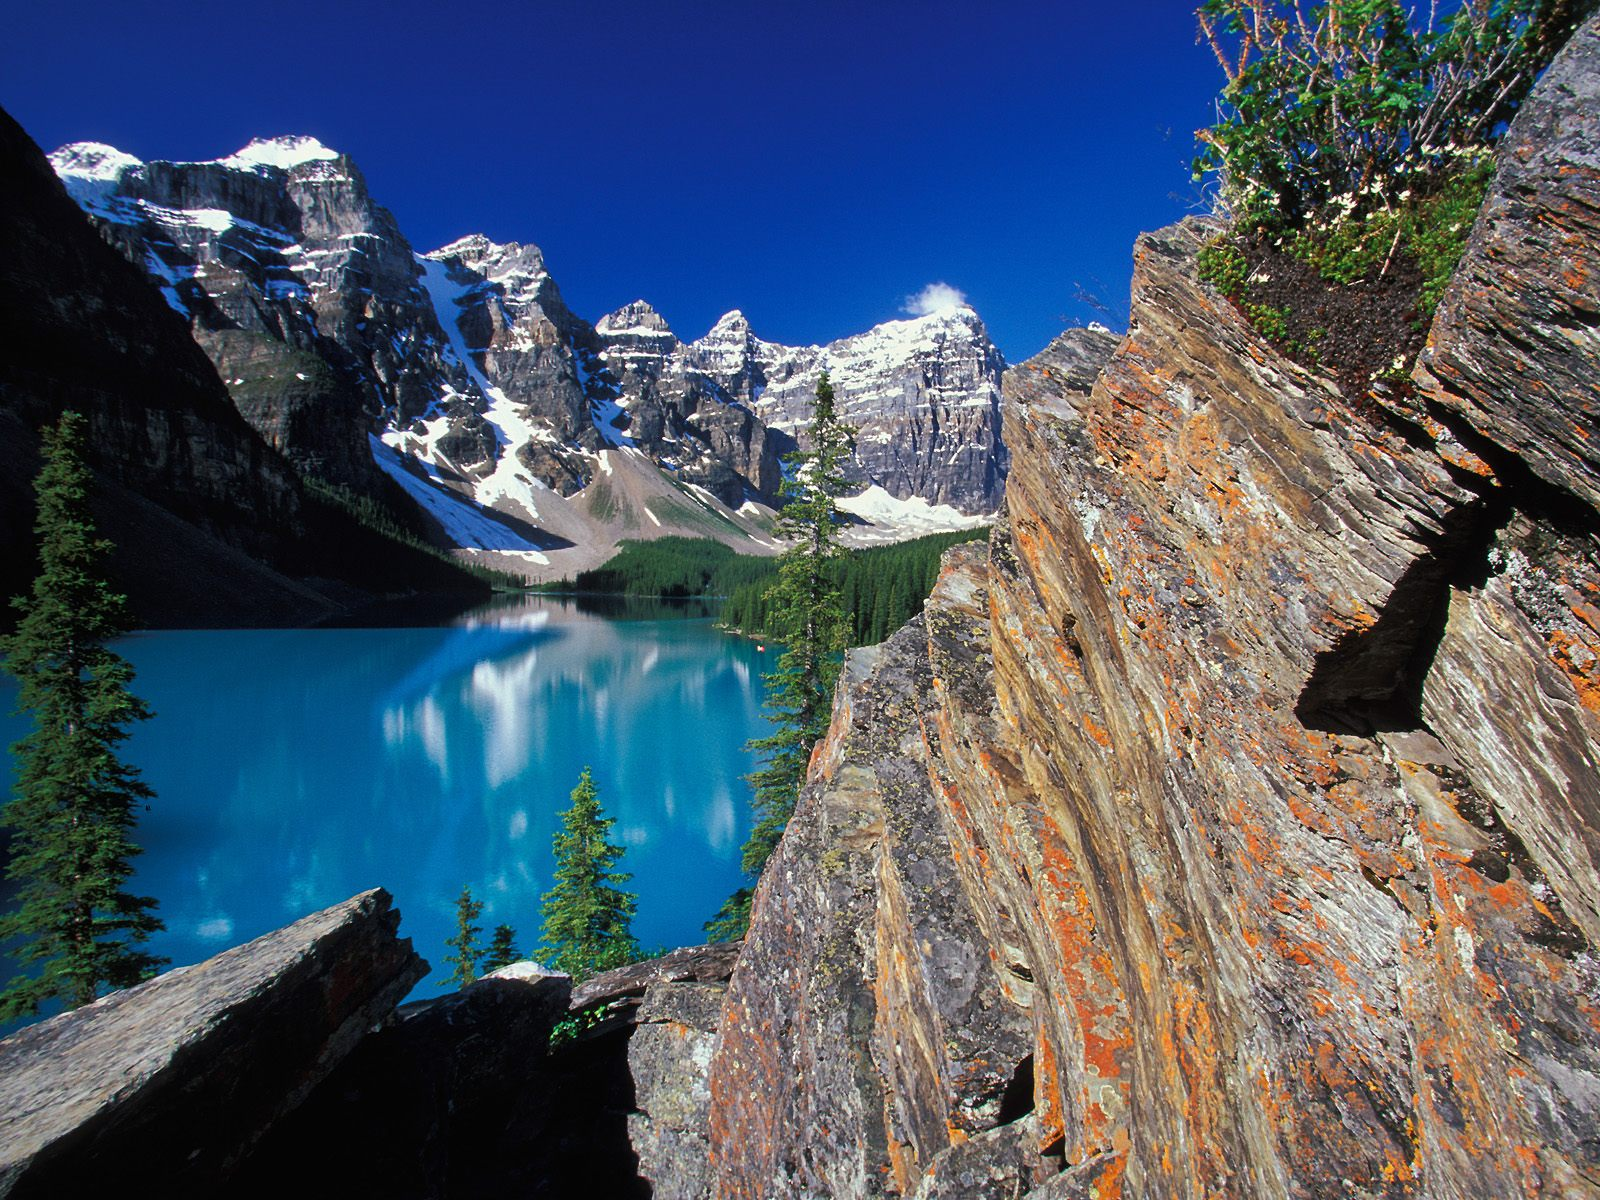 photograf canada wallpapers 1600x1200